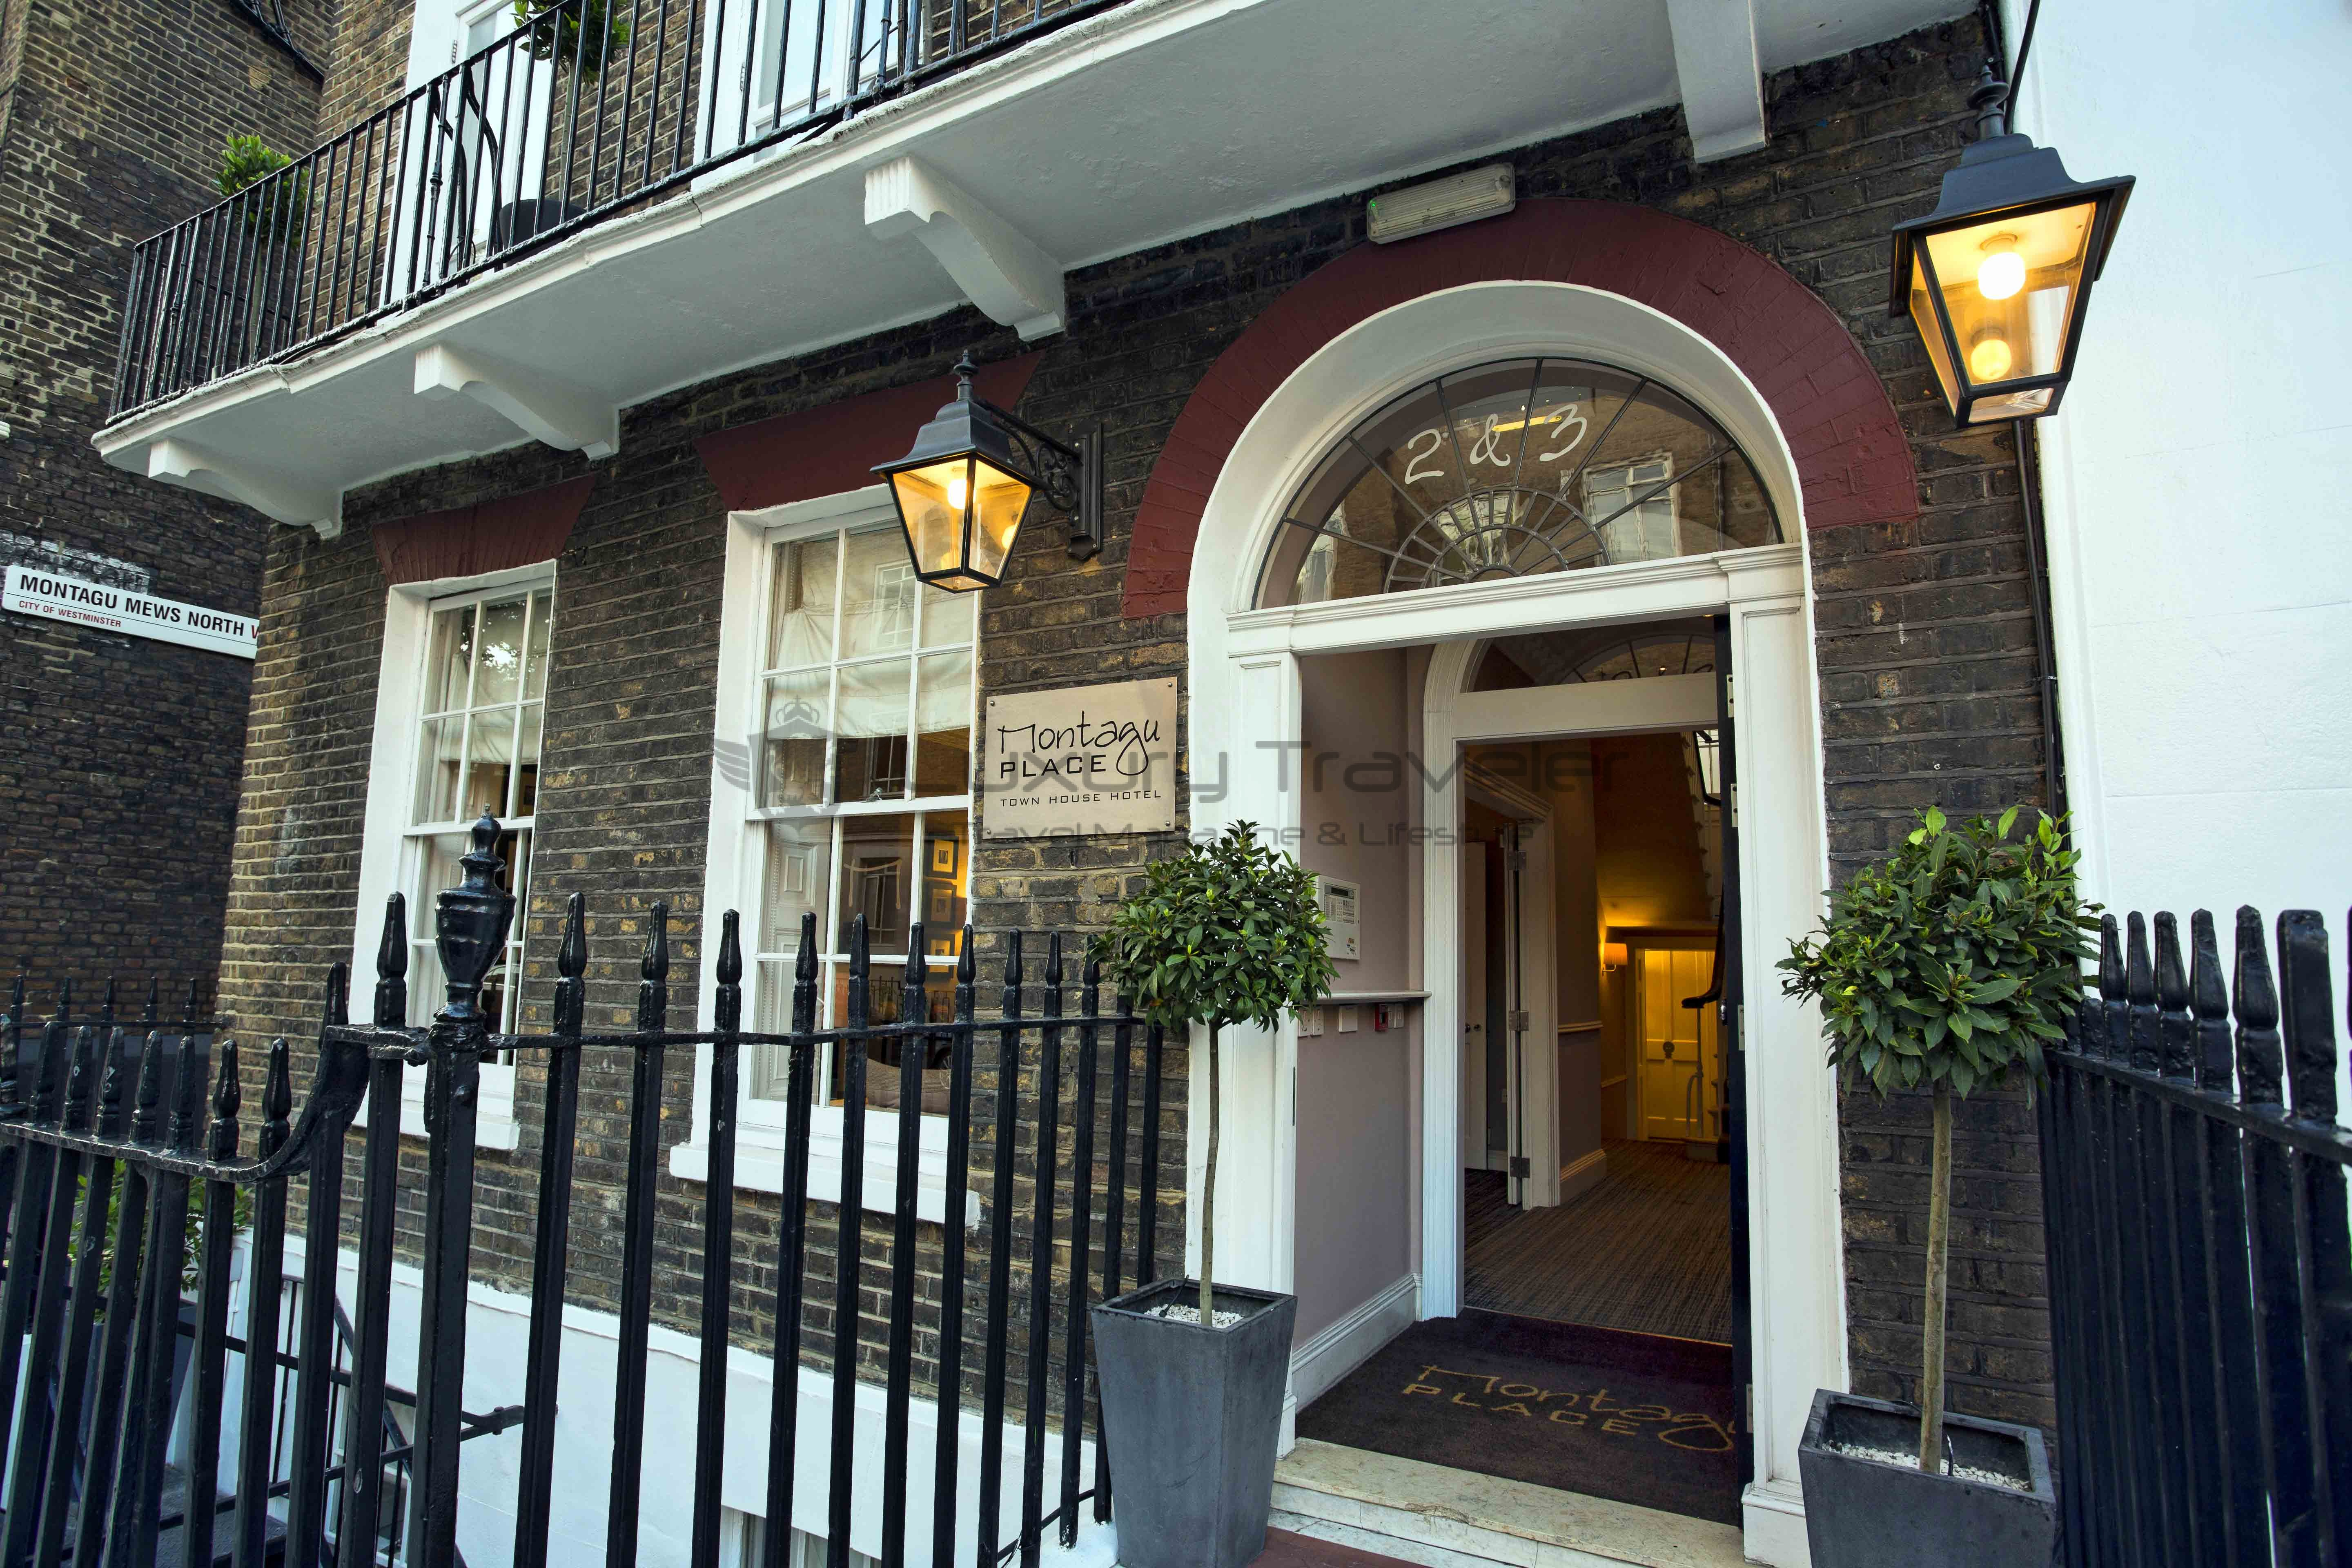 Montagu_Place_Hotel_London_Location_Street